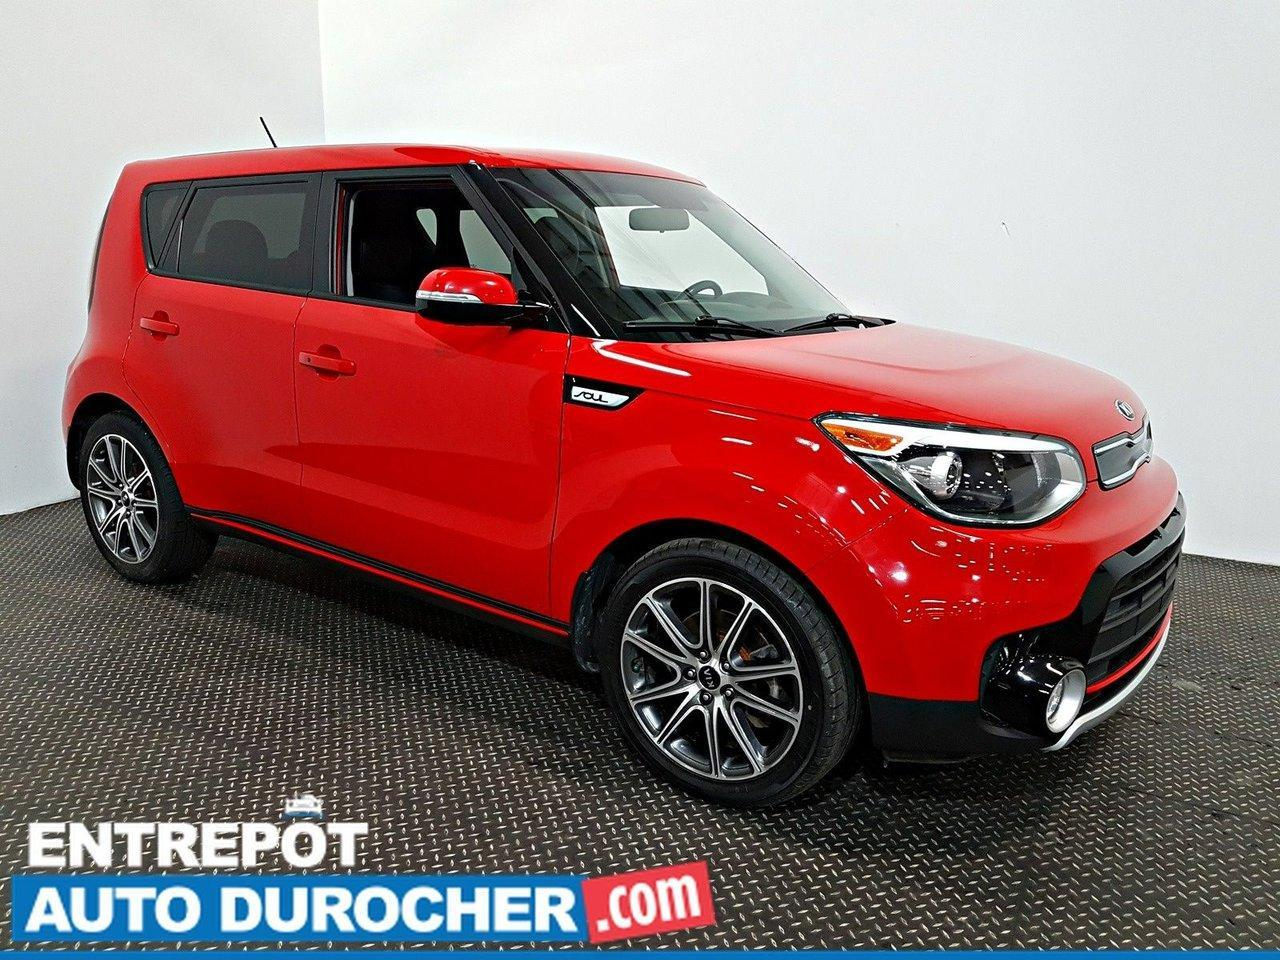 used 2017 kia soul turbo air climatisé - caméra de recul - semi cuir for sale in laval, quebec carpages.ca